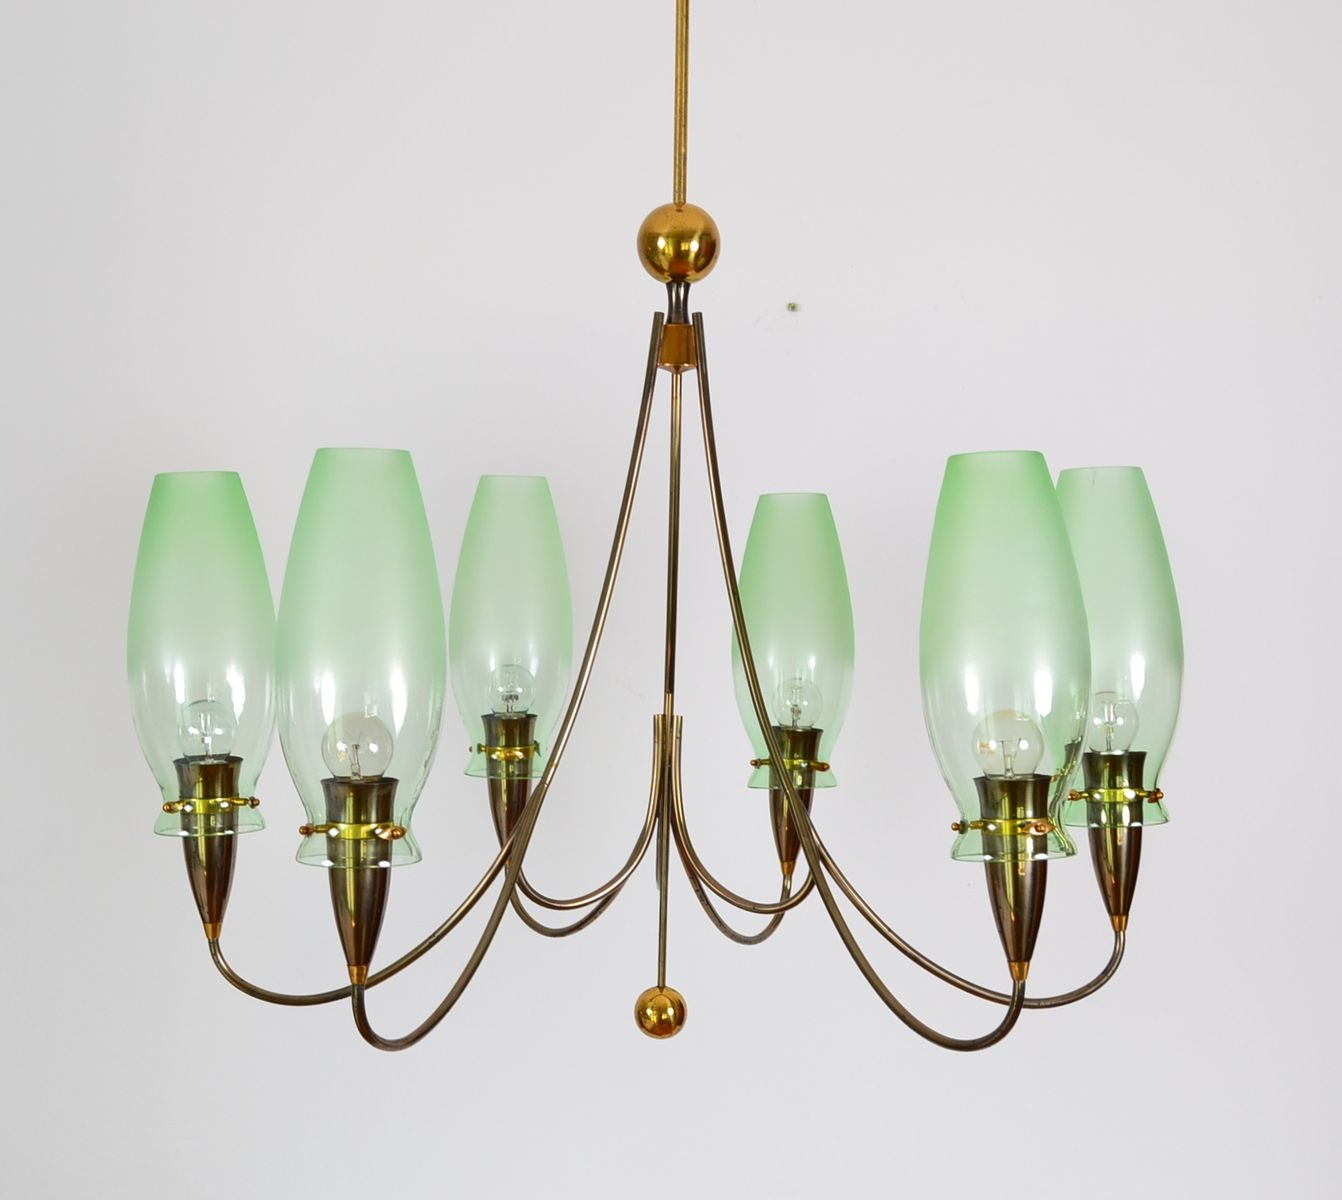 Brass Amp Green Glass Chandelier 1980s For Sale At Pamono